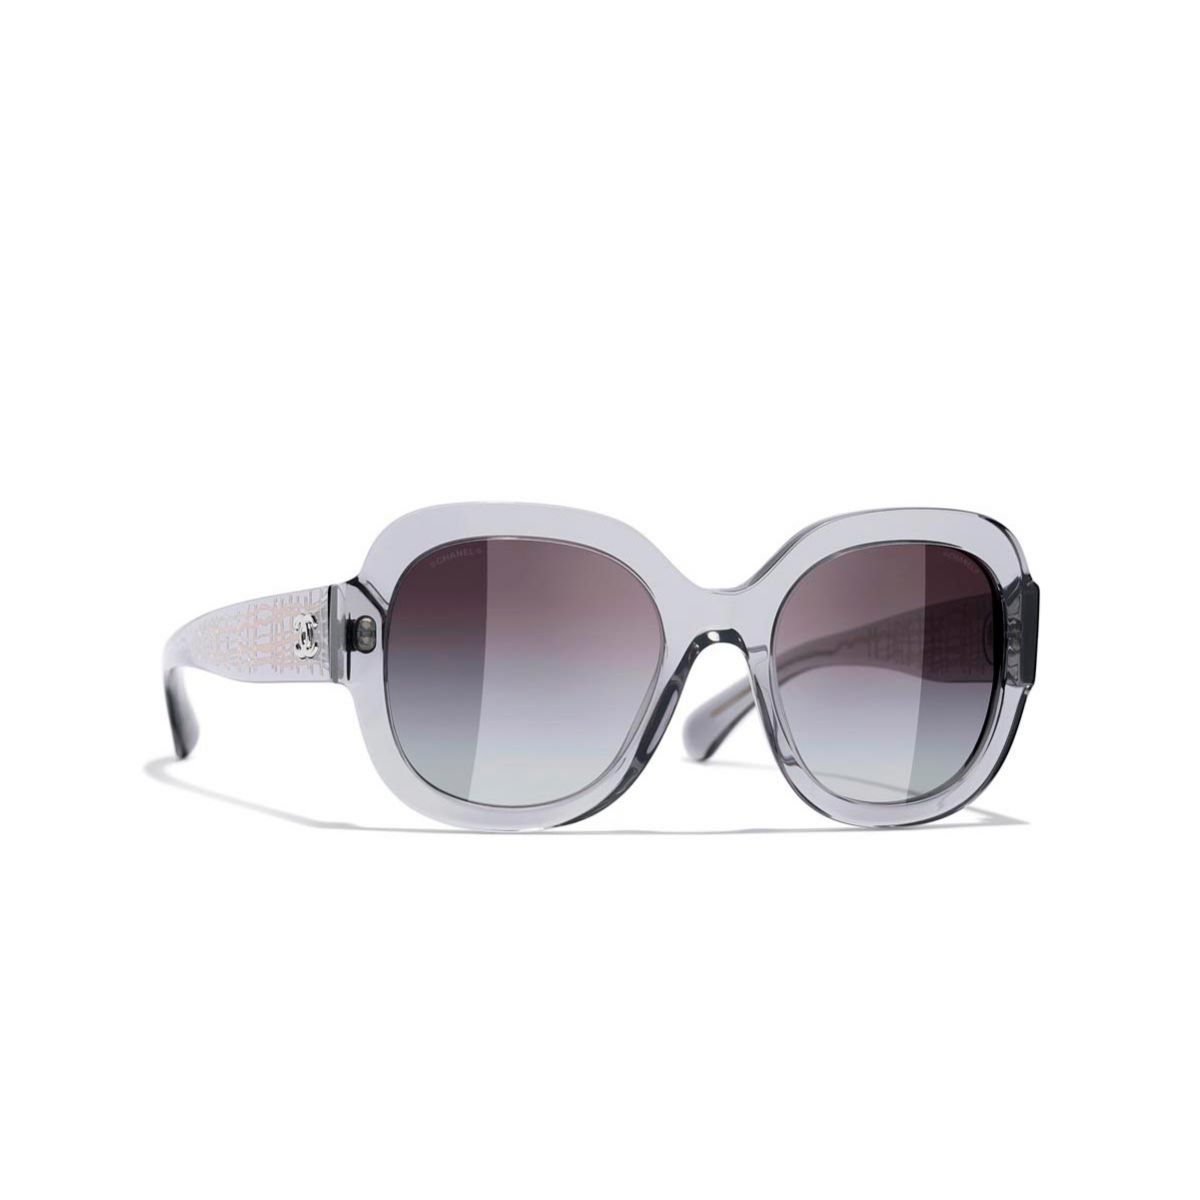 Square Sunglasses 300 Sunglasses